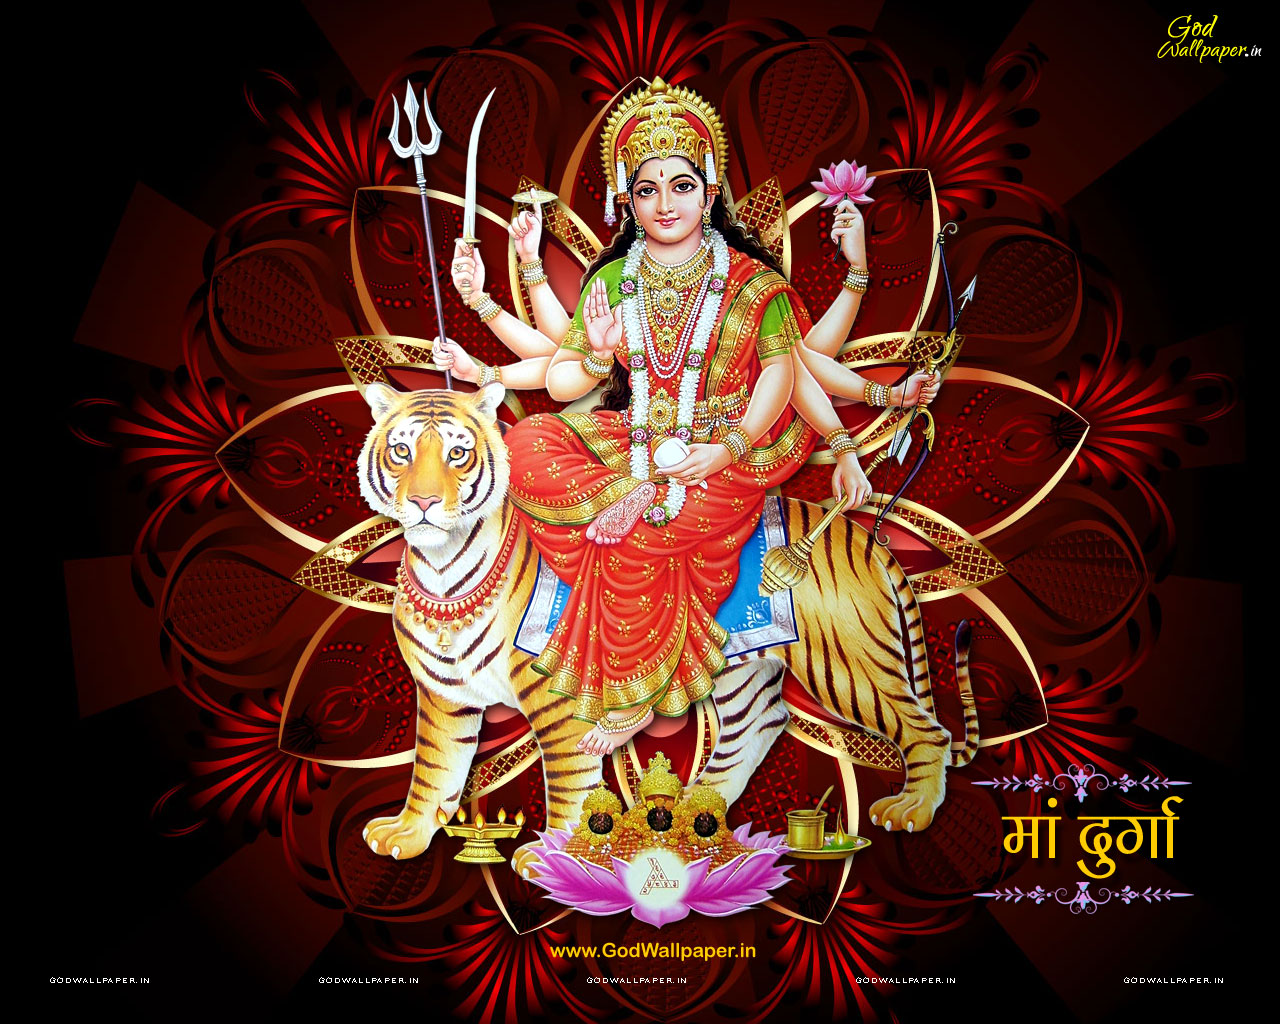 Goddess Durga HD Desktop Wallpaper Widescreen 1280x1024